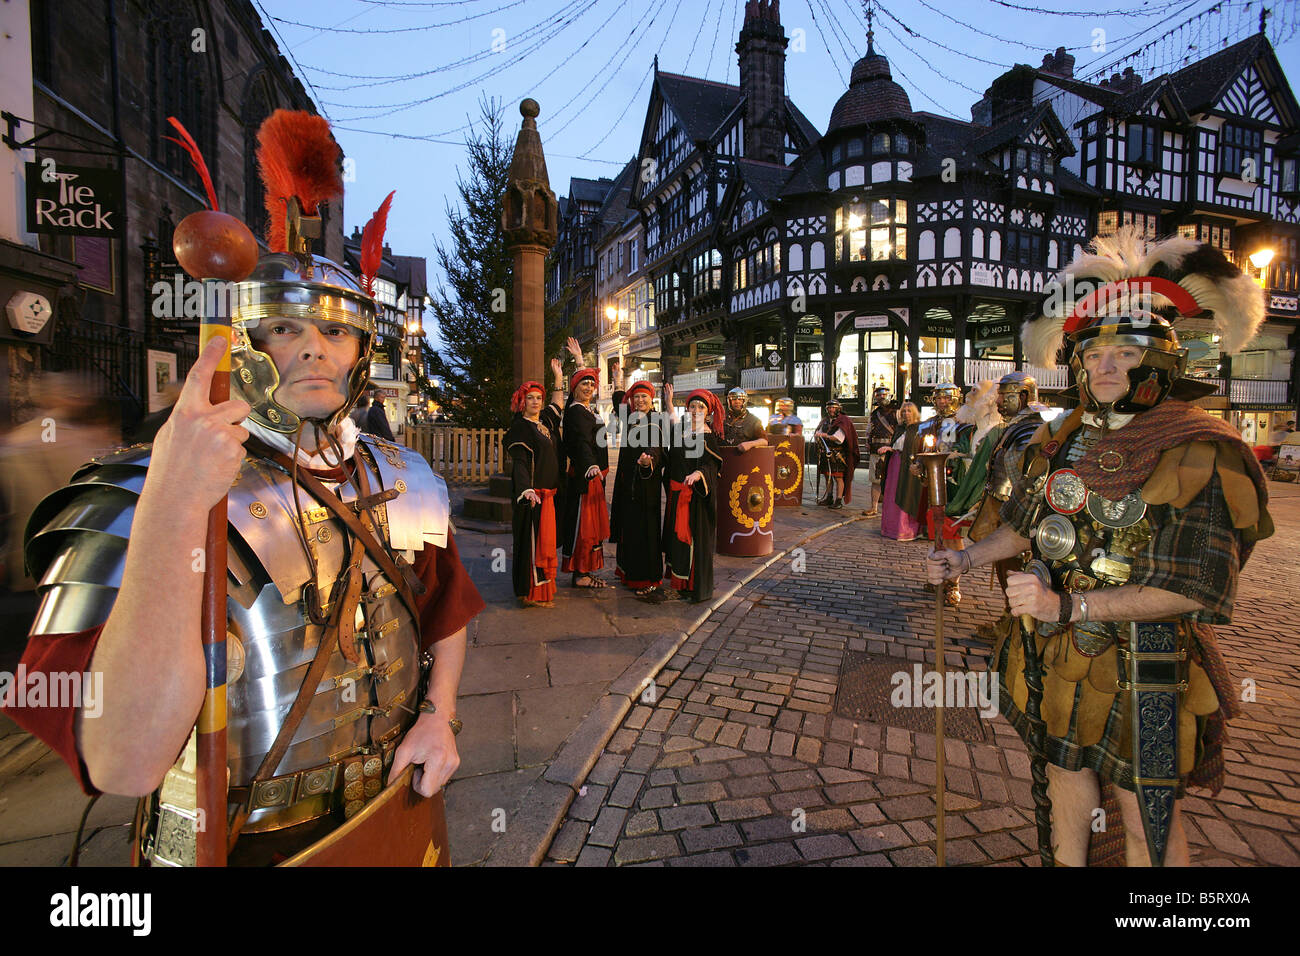 City of Chester, England. Roman Tours conducting a torchlight ...